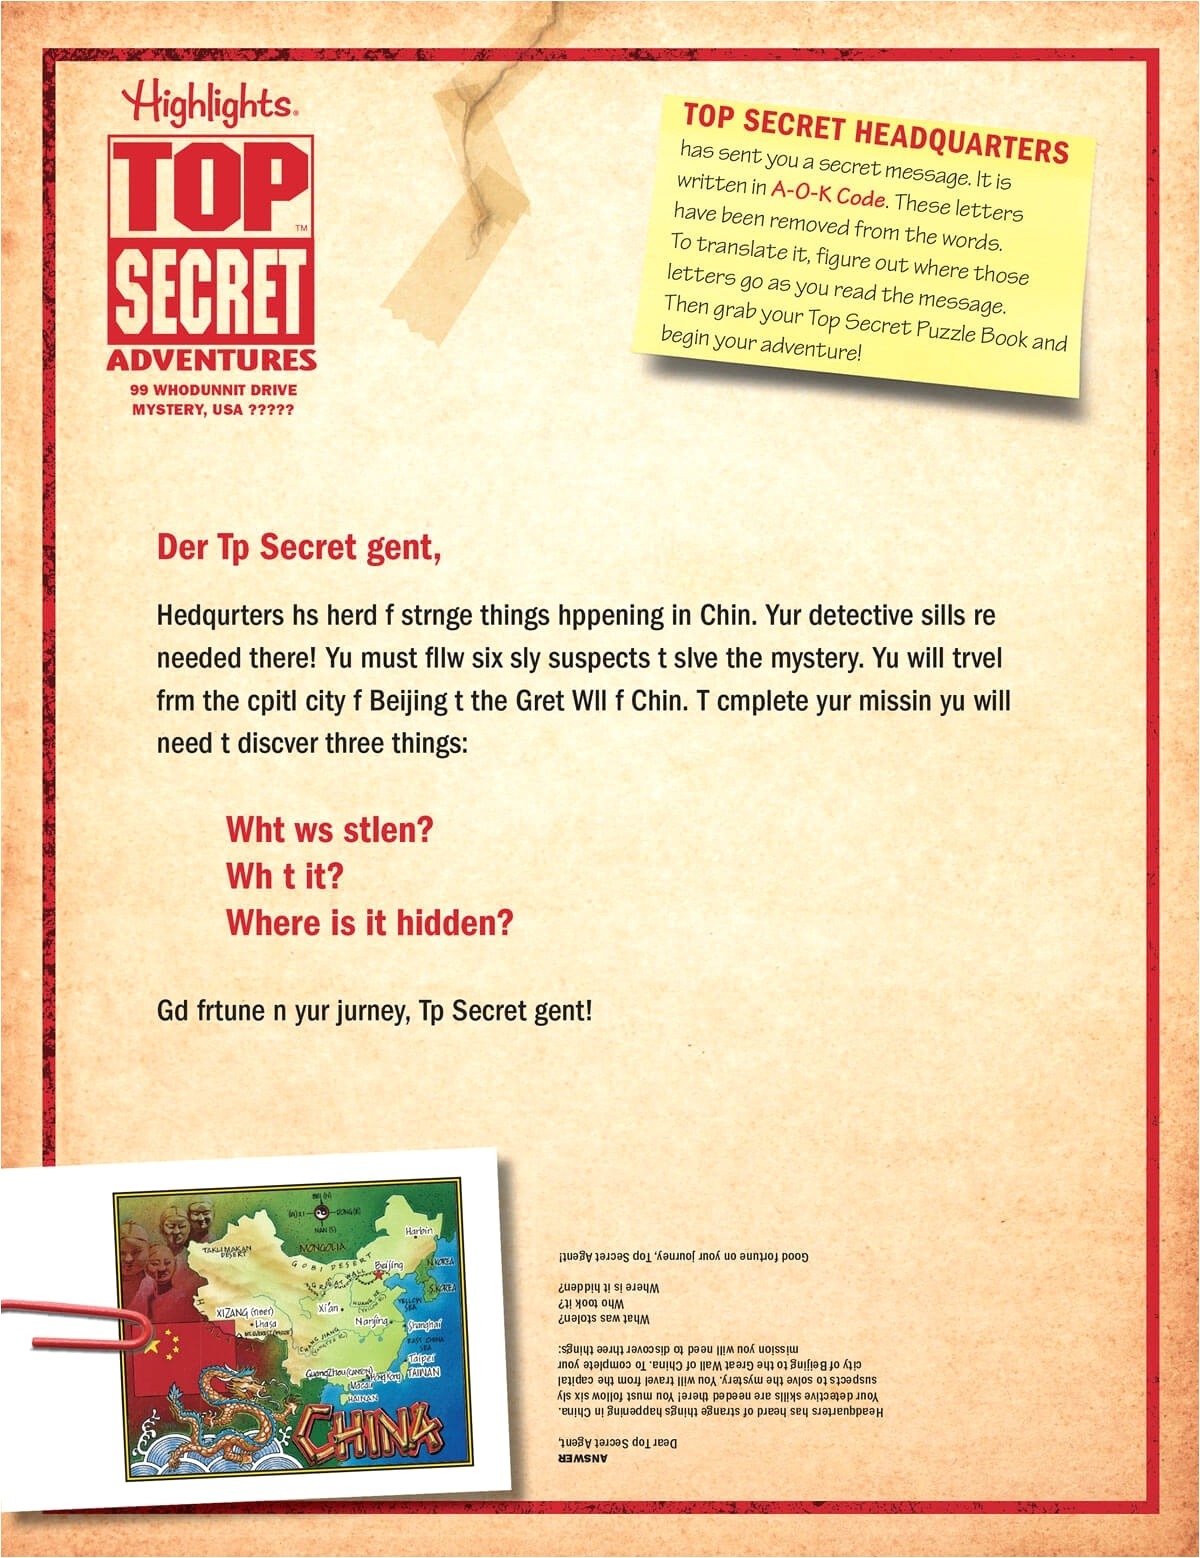 free magazine subscription gift certificate template